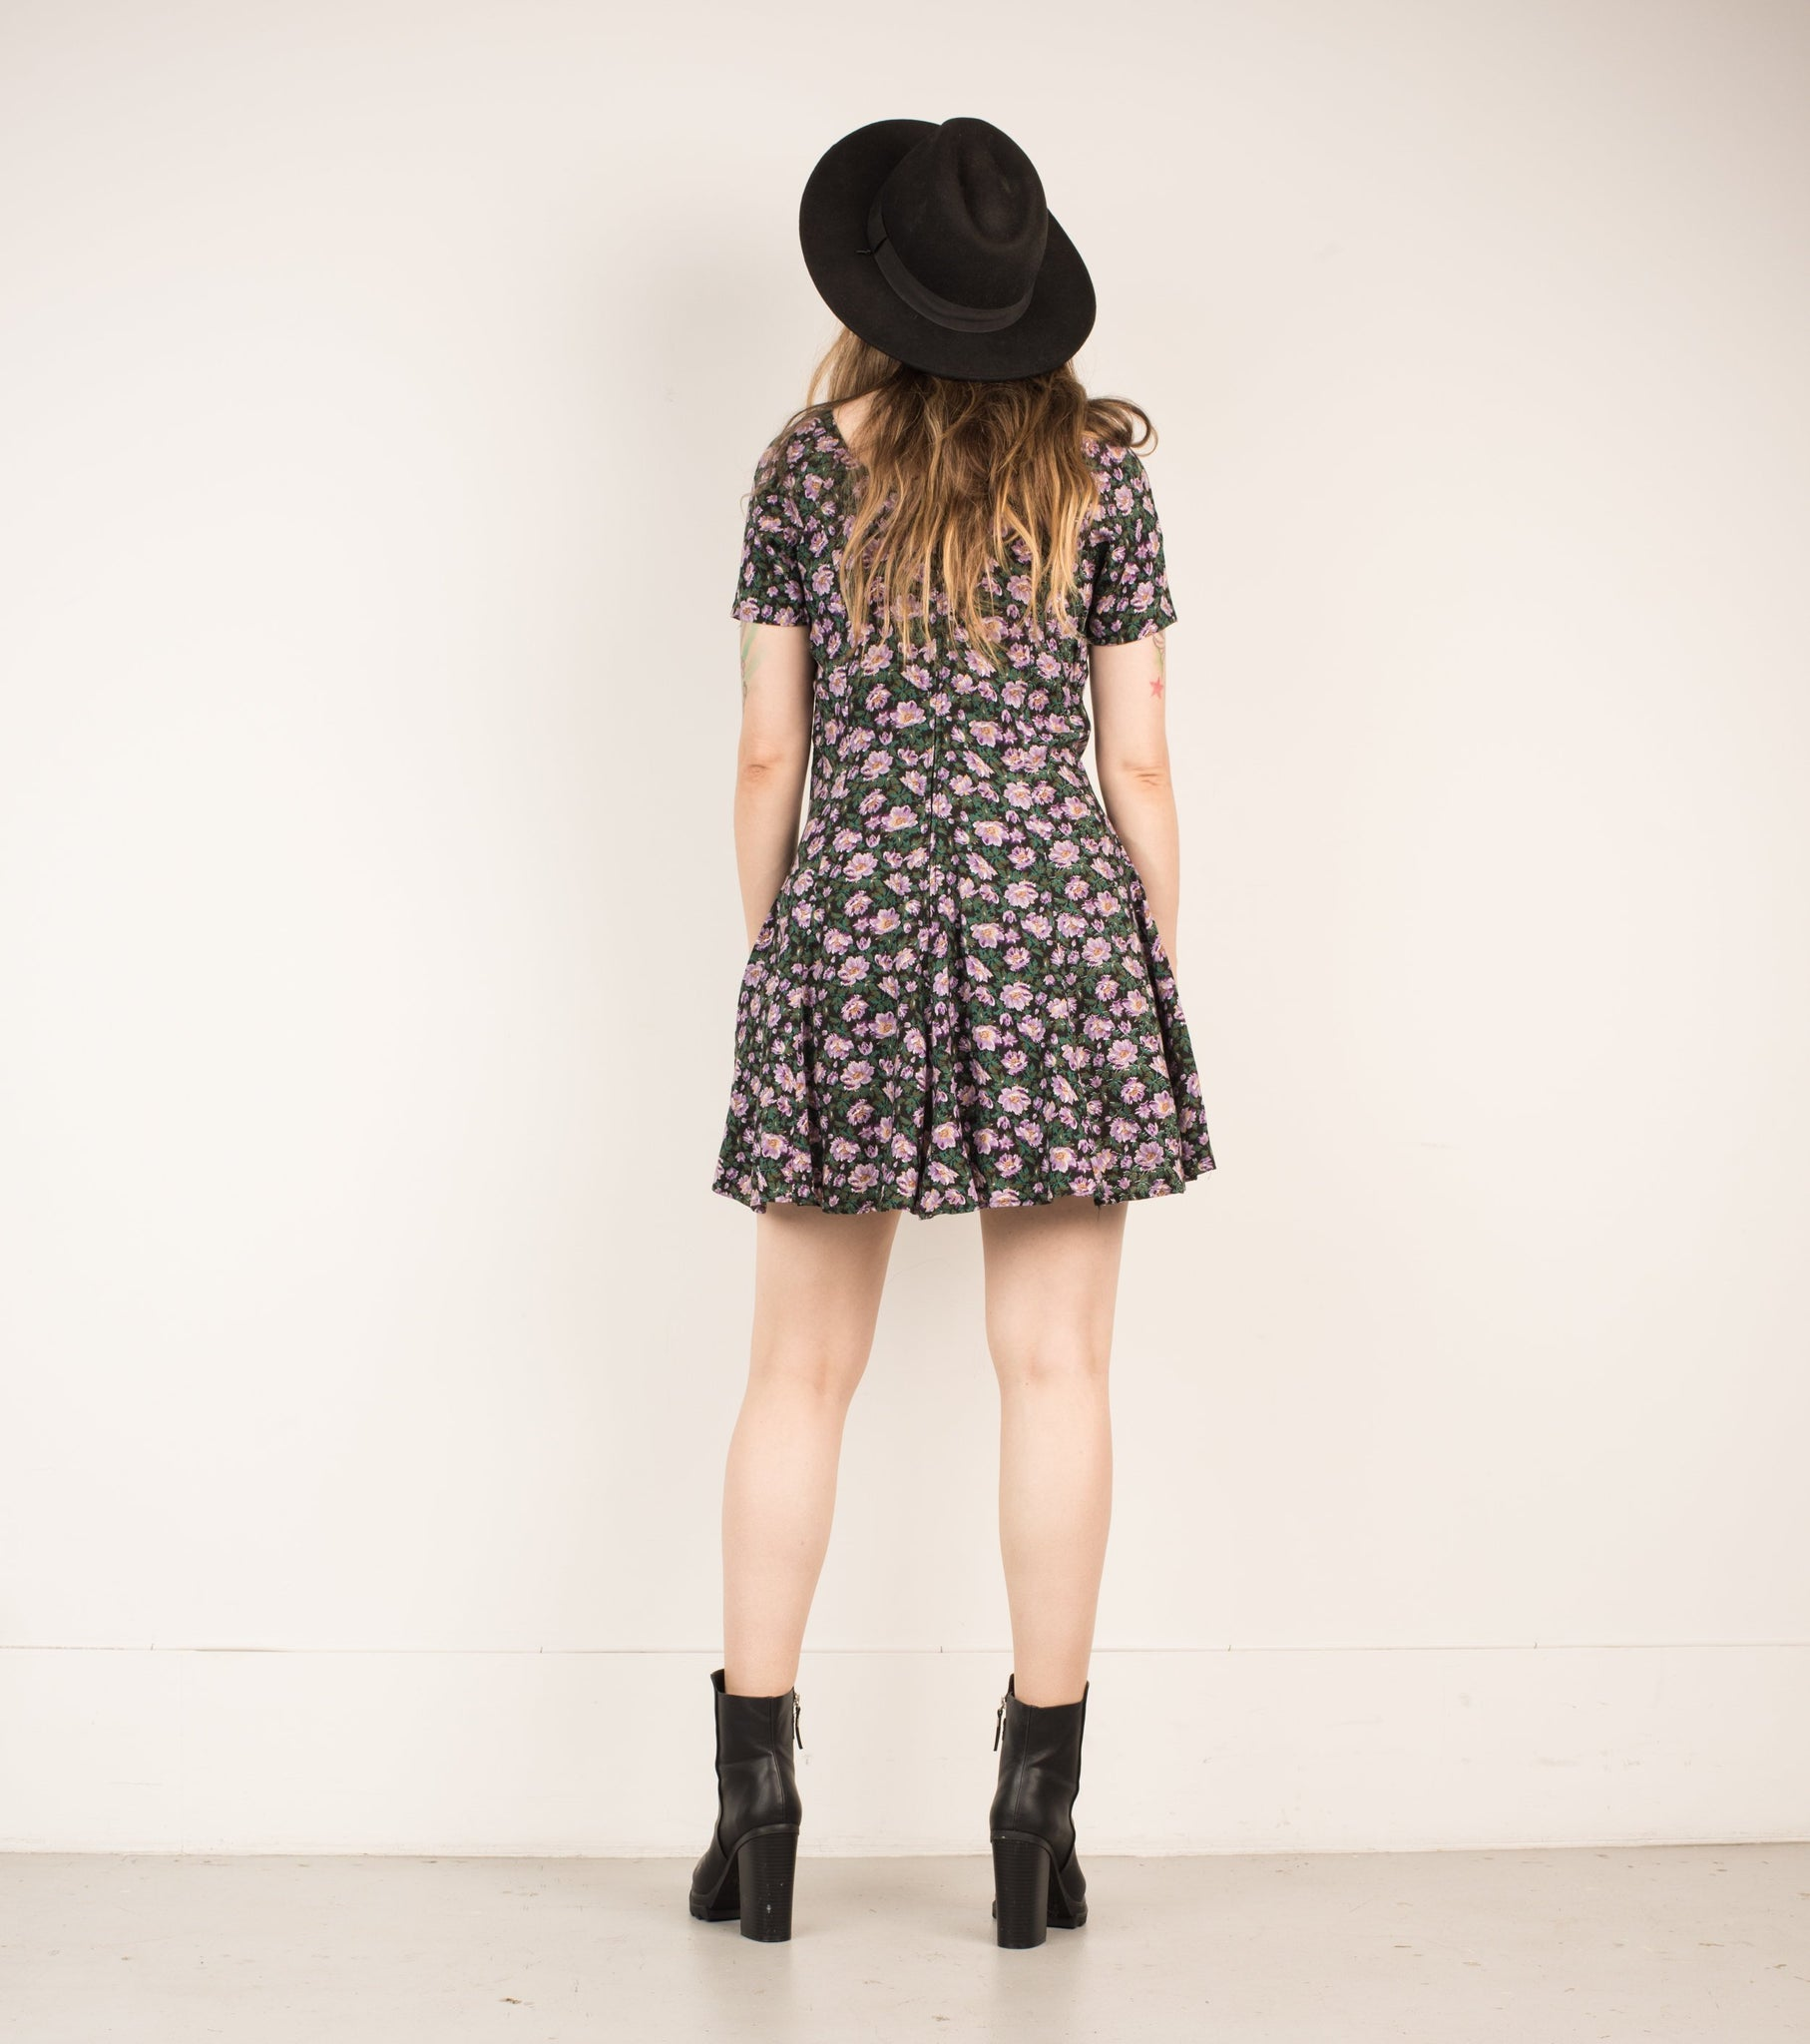 Vintage Black + Lilac Floral Skater Dress / S - Closed Caption